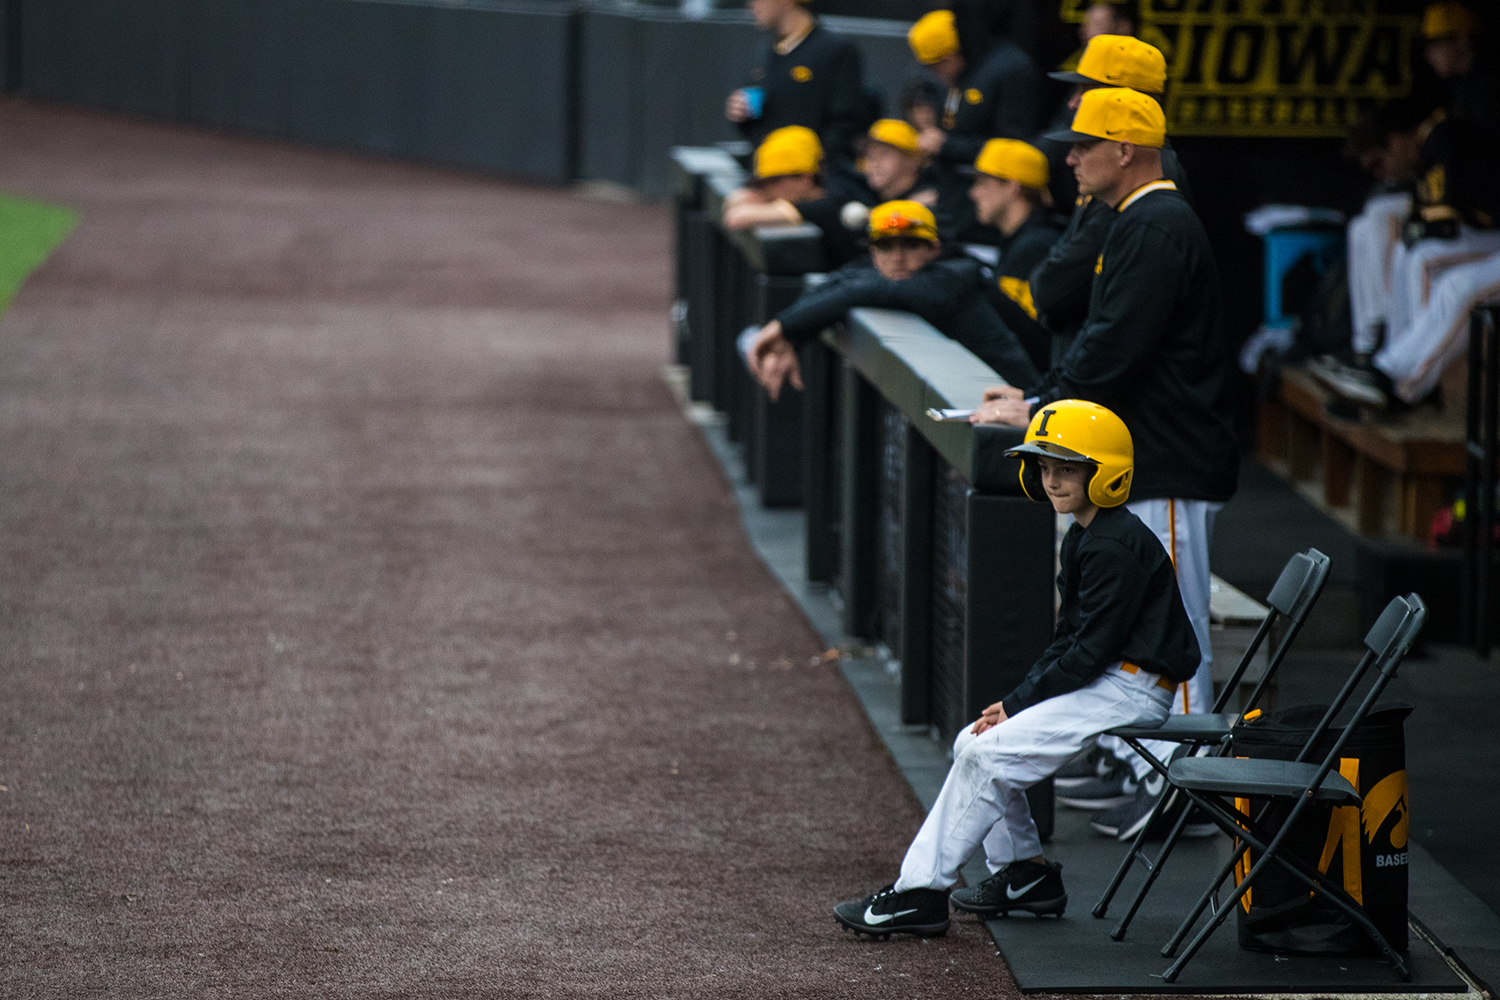 An+Iowan+ball+boy+watches++players+hitting+the+ball+during+a+baseball+game+against+Illinois+State+on+Wednesday%2C+Apr.+3%2C+2019.+The+Hawkeyes+lost+to+the+Redbirds+11-6.+%28Roman+Slabach%2FThe+Daily+Iowan%29